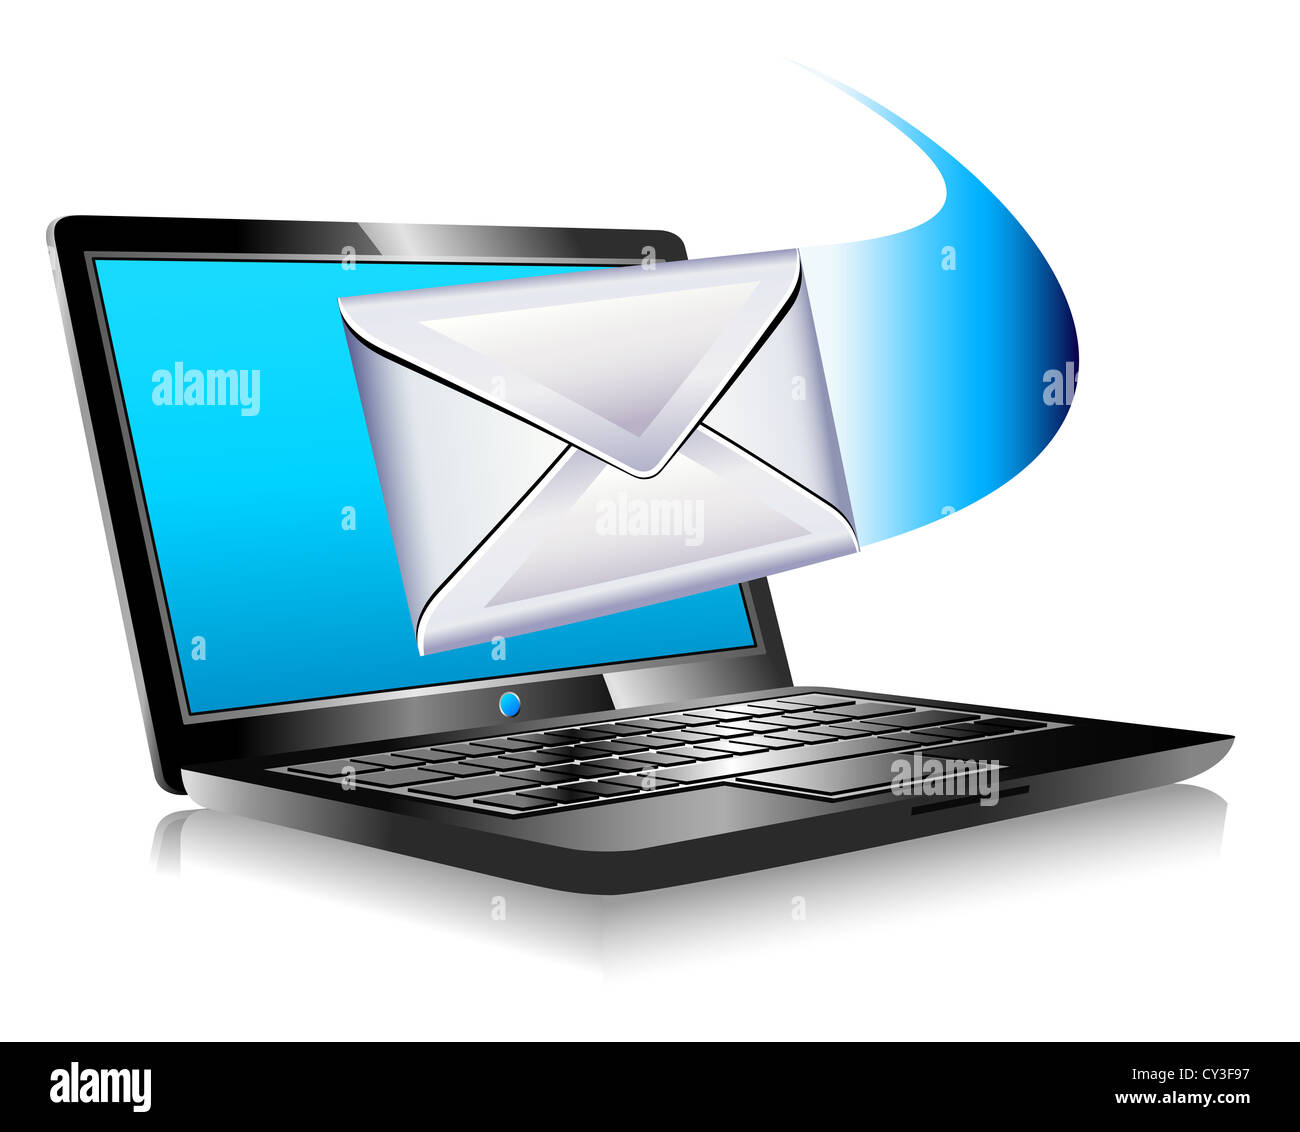 email mailing the world SMS Laptop - email sent and arriving from a laptop - Mailing the world internet connection - Stock Image